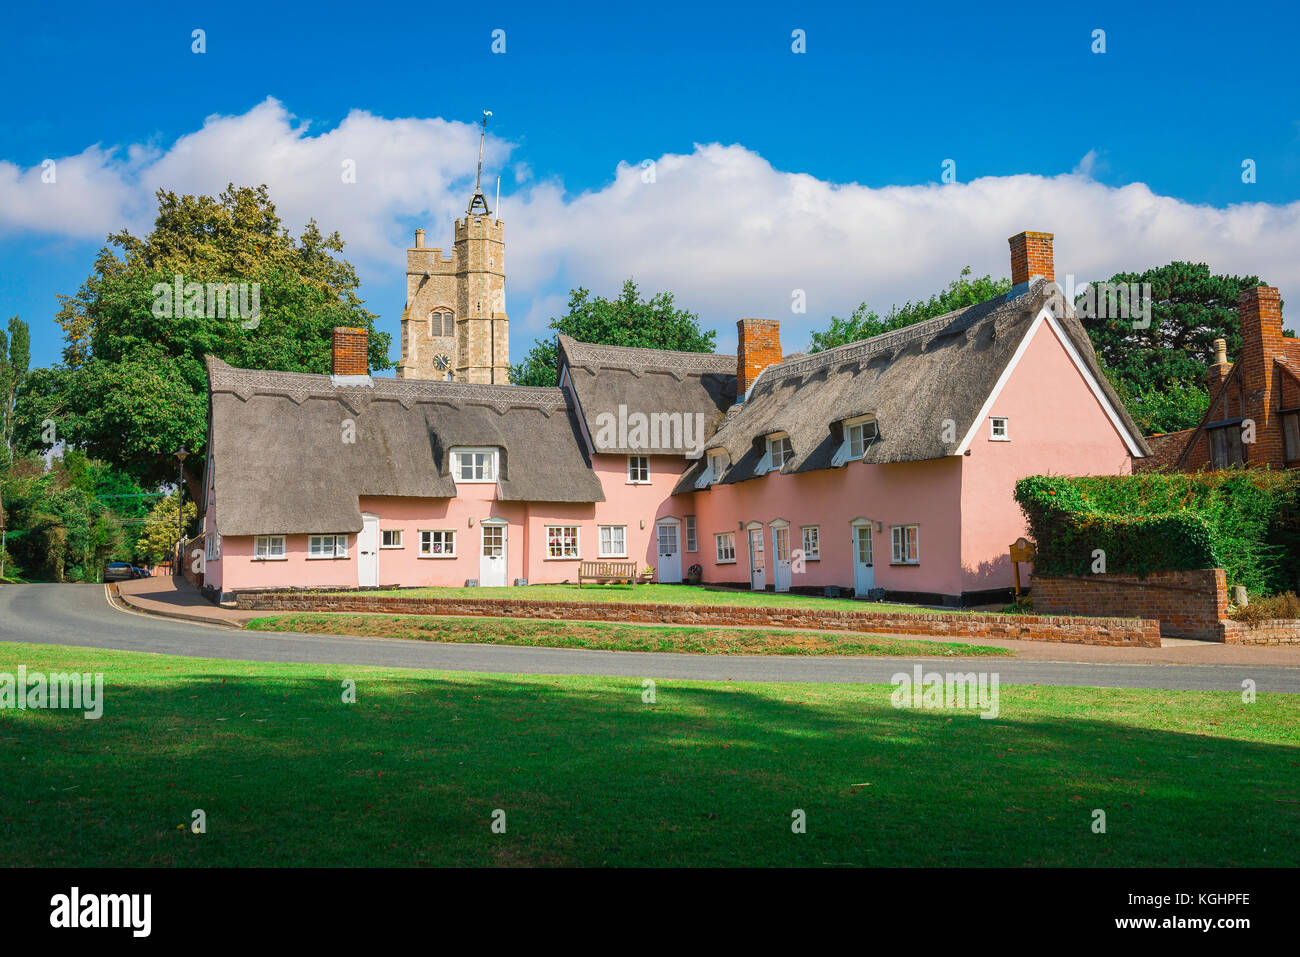 Suffolk village UK, view across the village green of a group of traditional pink cottages in Cavendish, Suffolk, - Stock Image